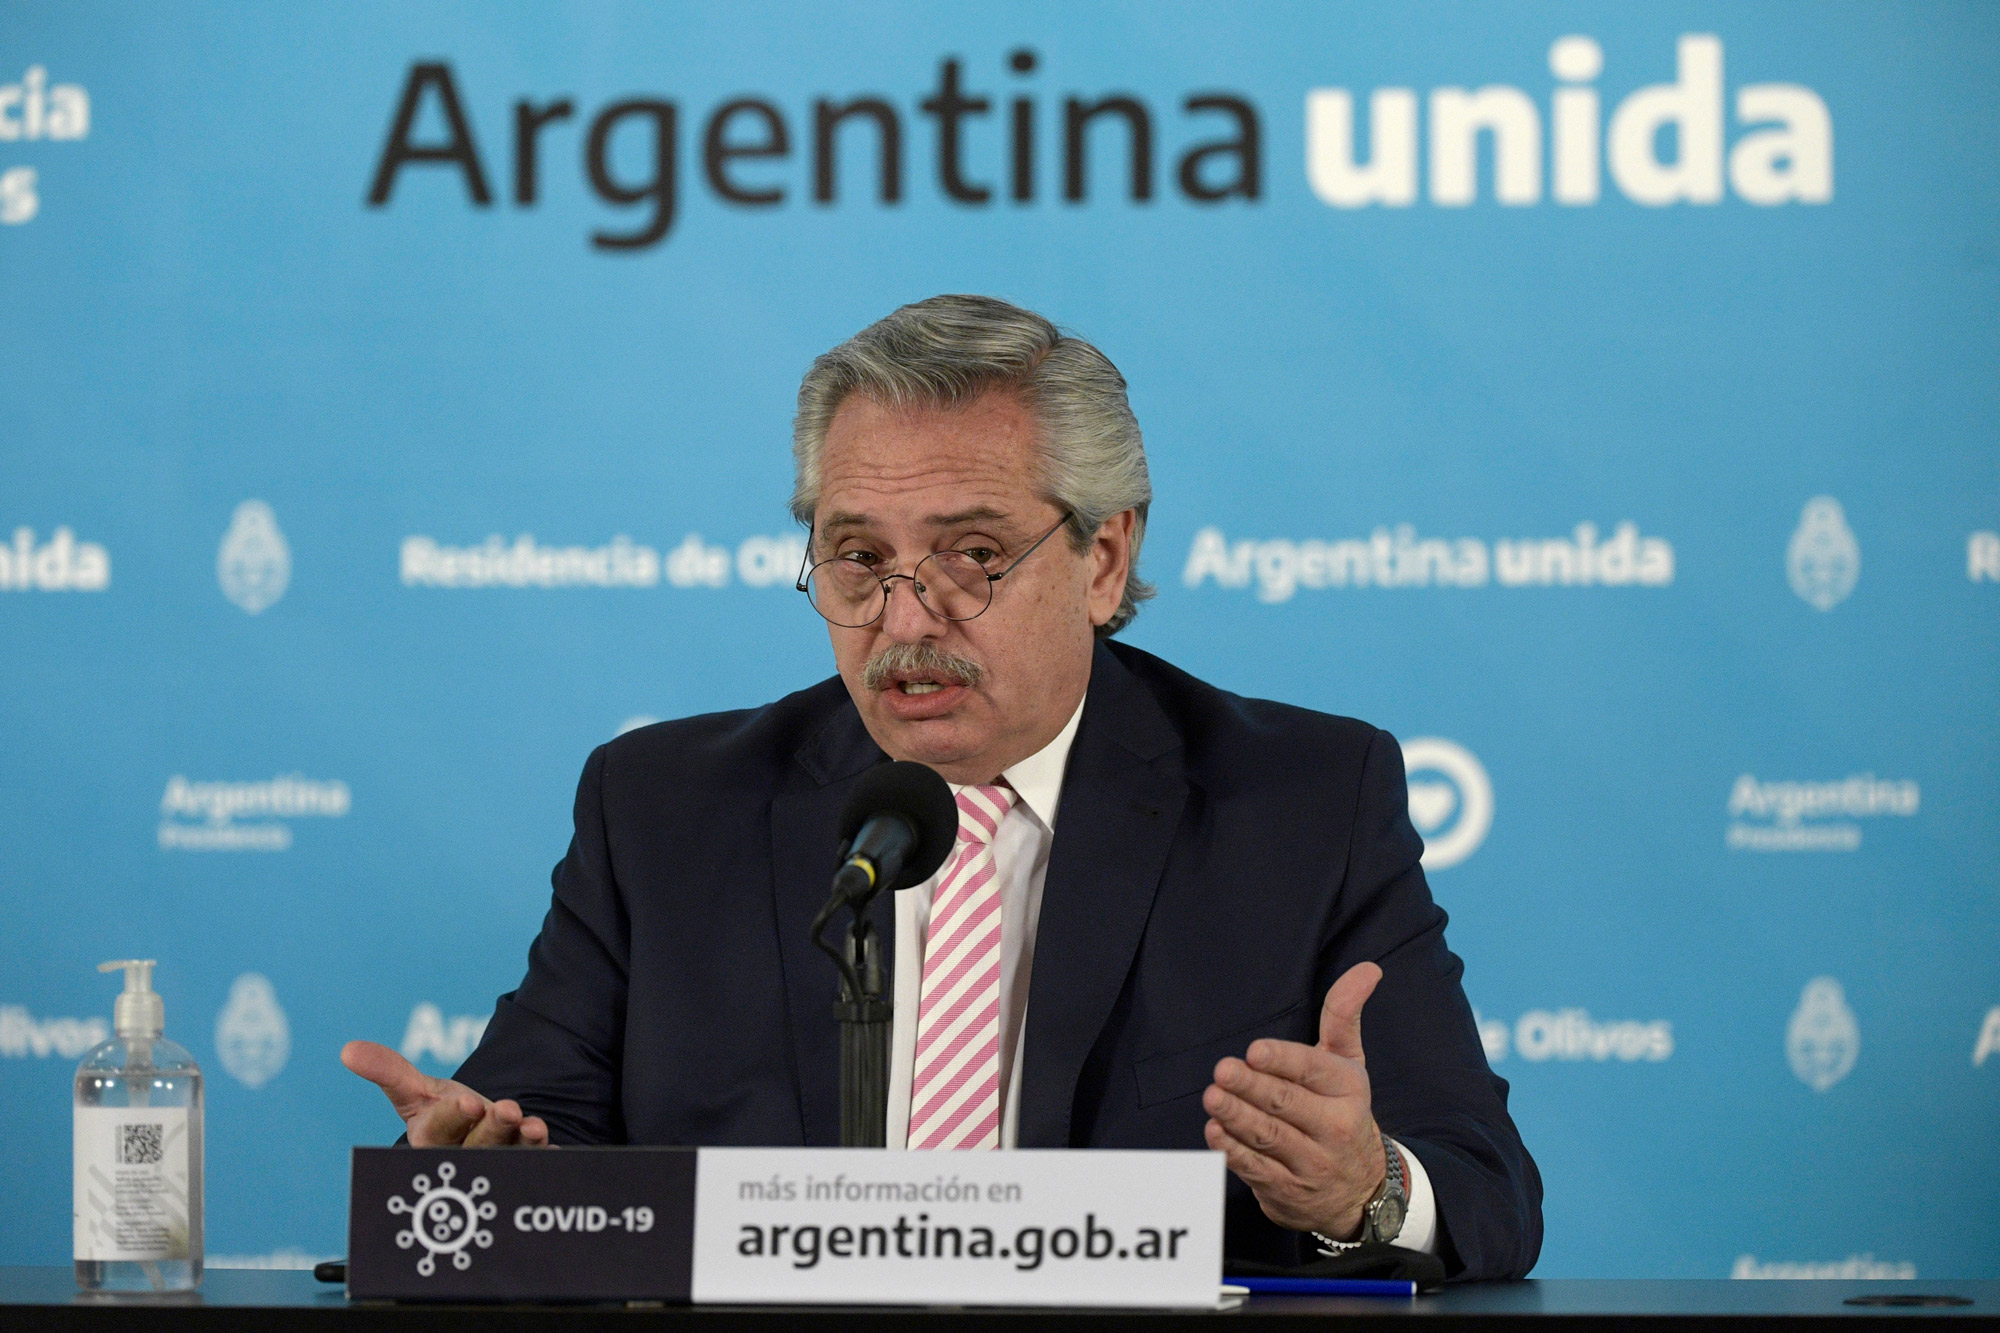 President of Argentina Alberto Fernandez speaks during a press conference on August 12 in Olivos, Argentina.